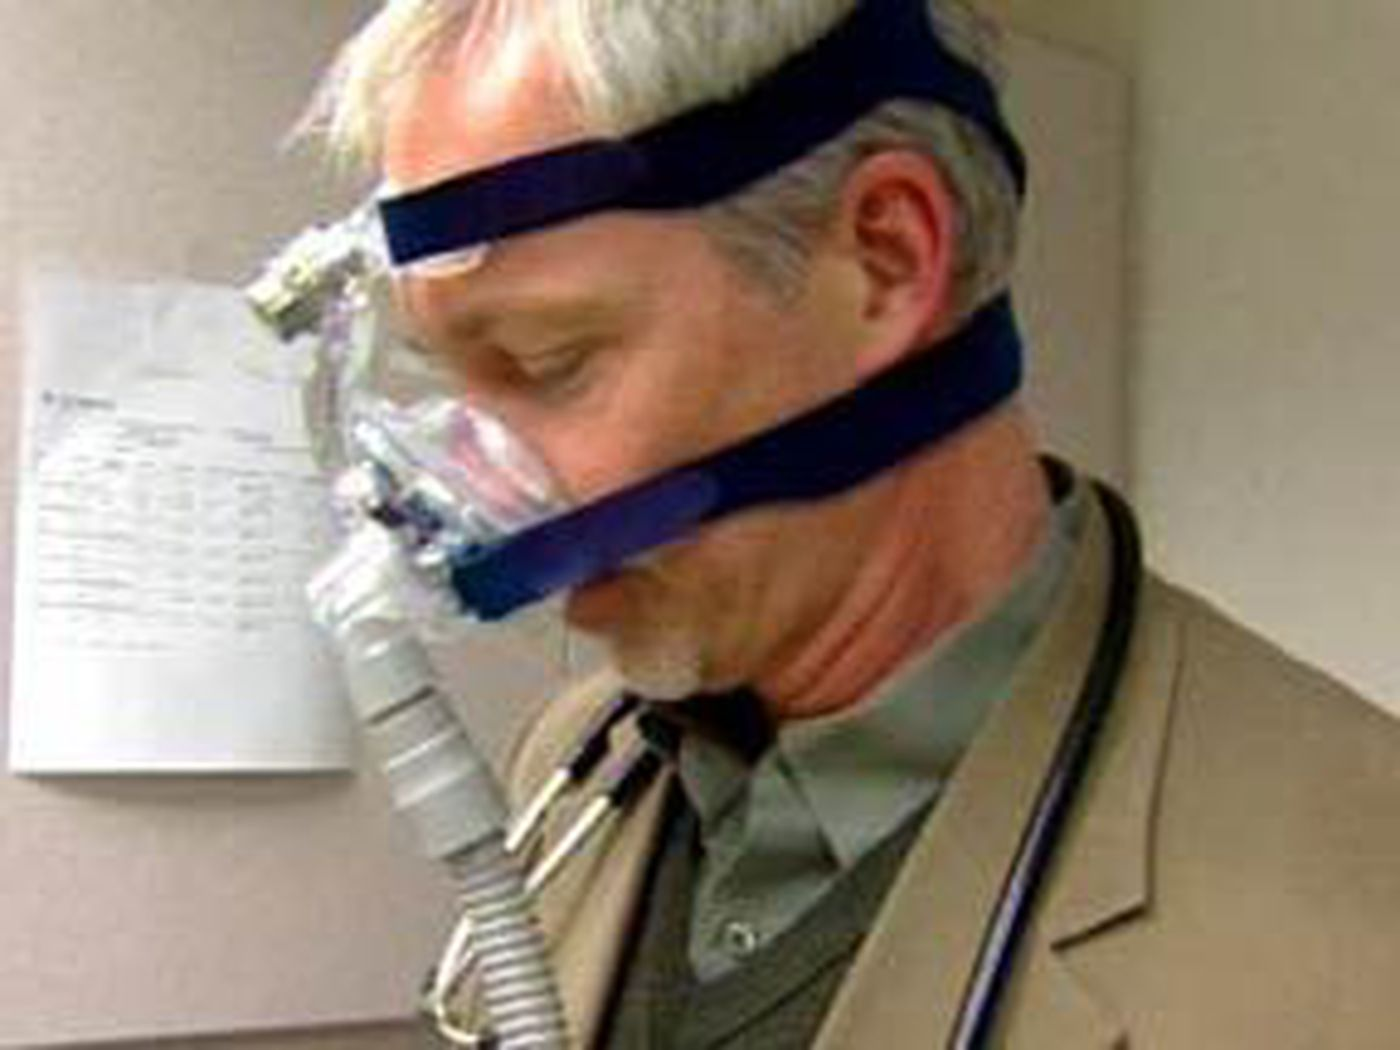 Treating Sleep Apnea Can Lead To Weight Loss